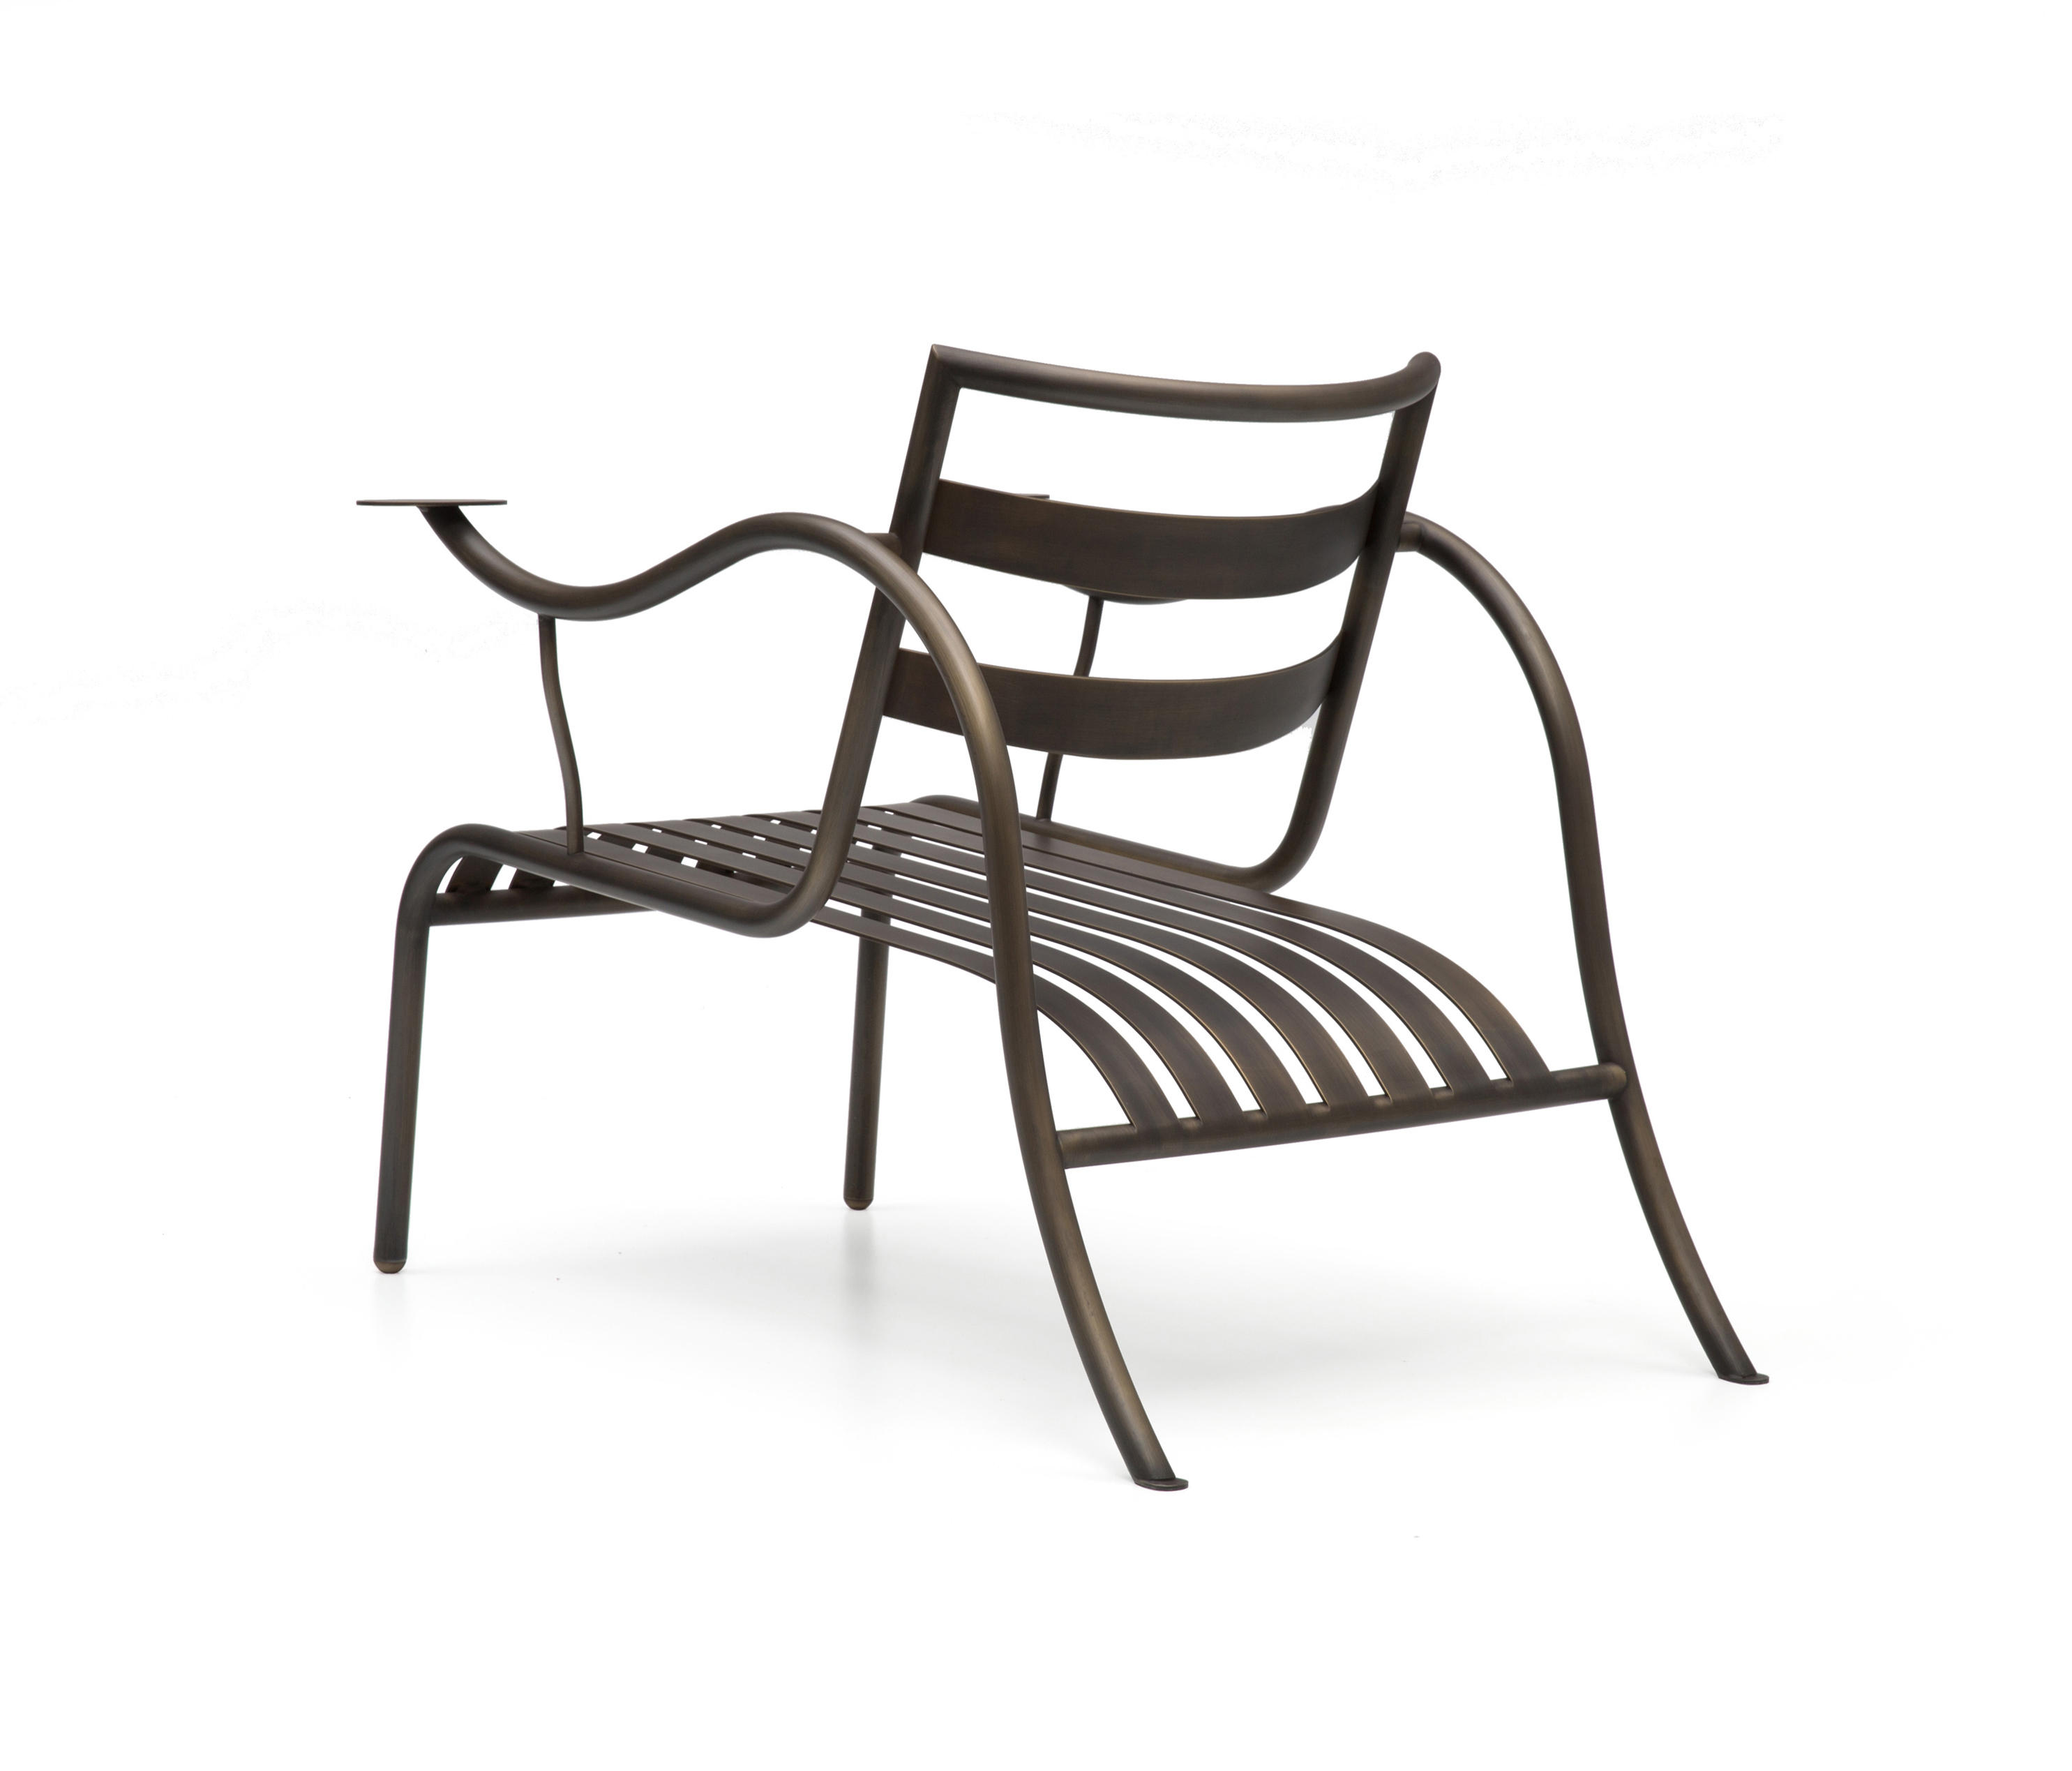 Thinking Mans Chair By Cappellini